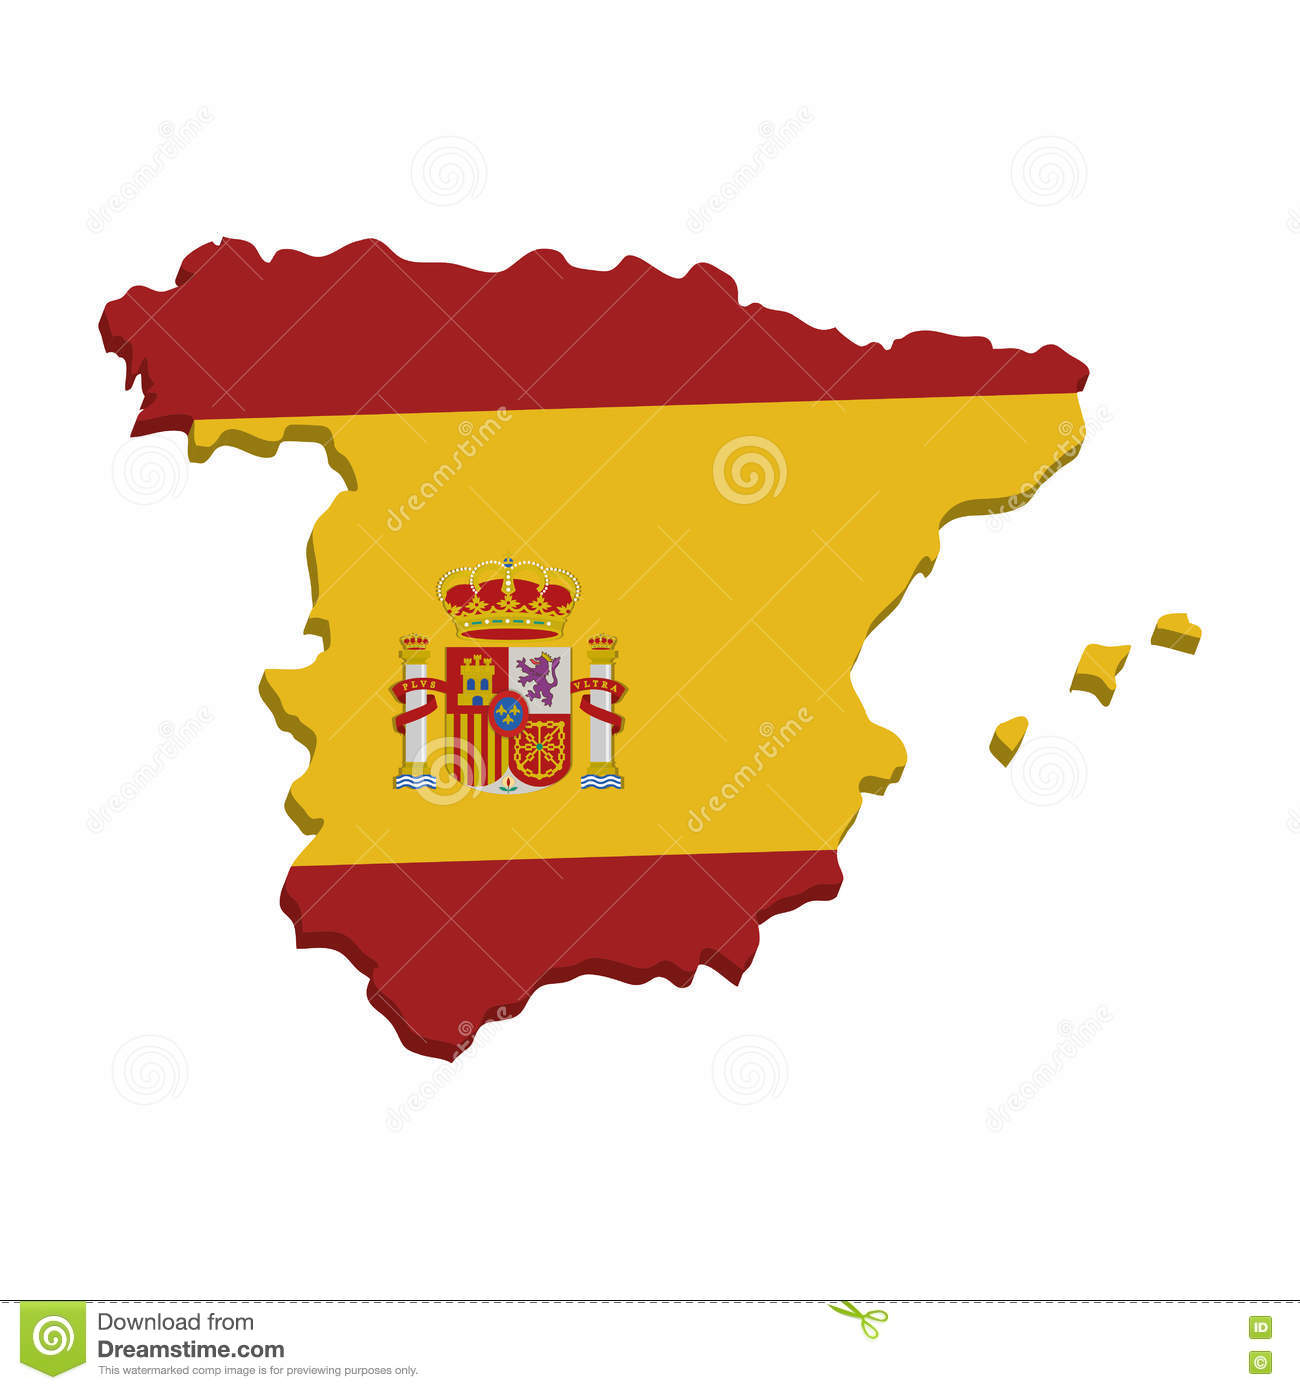 Map Of Spain Geography.Spain Map Geography Isolated Icon Stock Vector Illustration Of